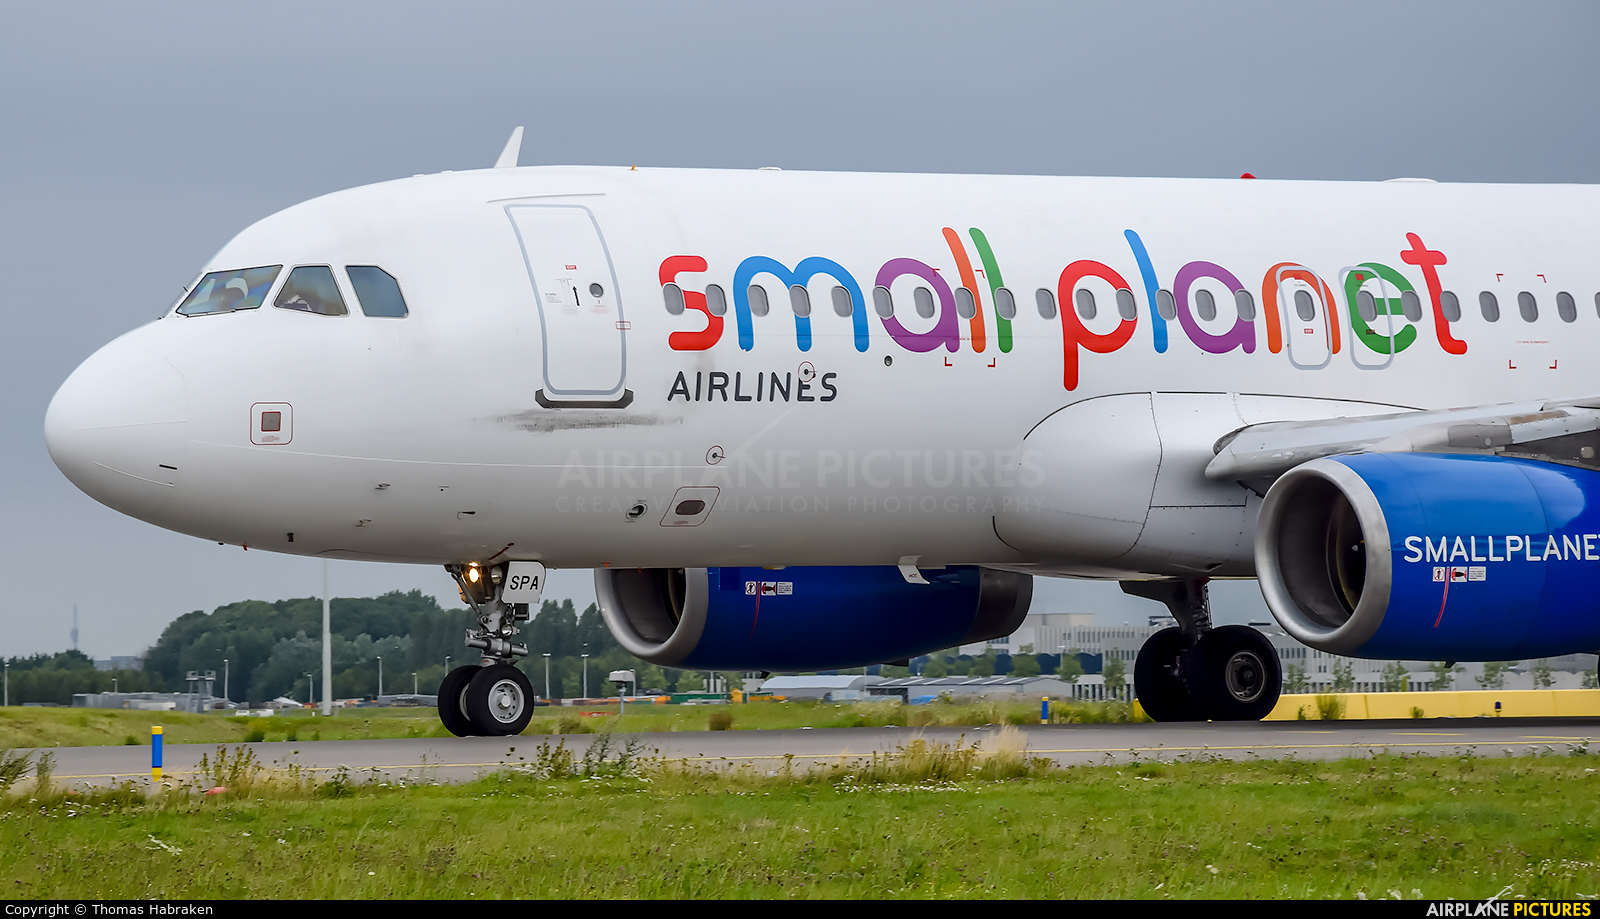 Small Planet Airlines LT-SPA aircraft at Amsterdam - Schiphol